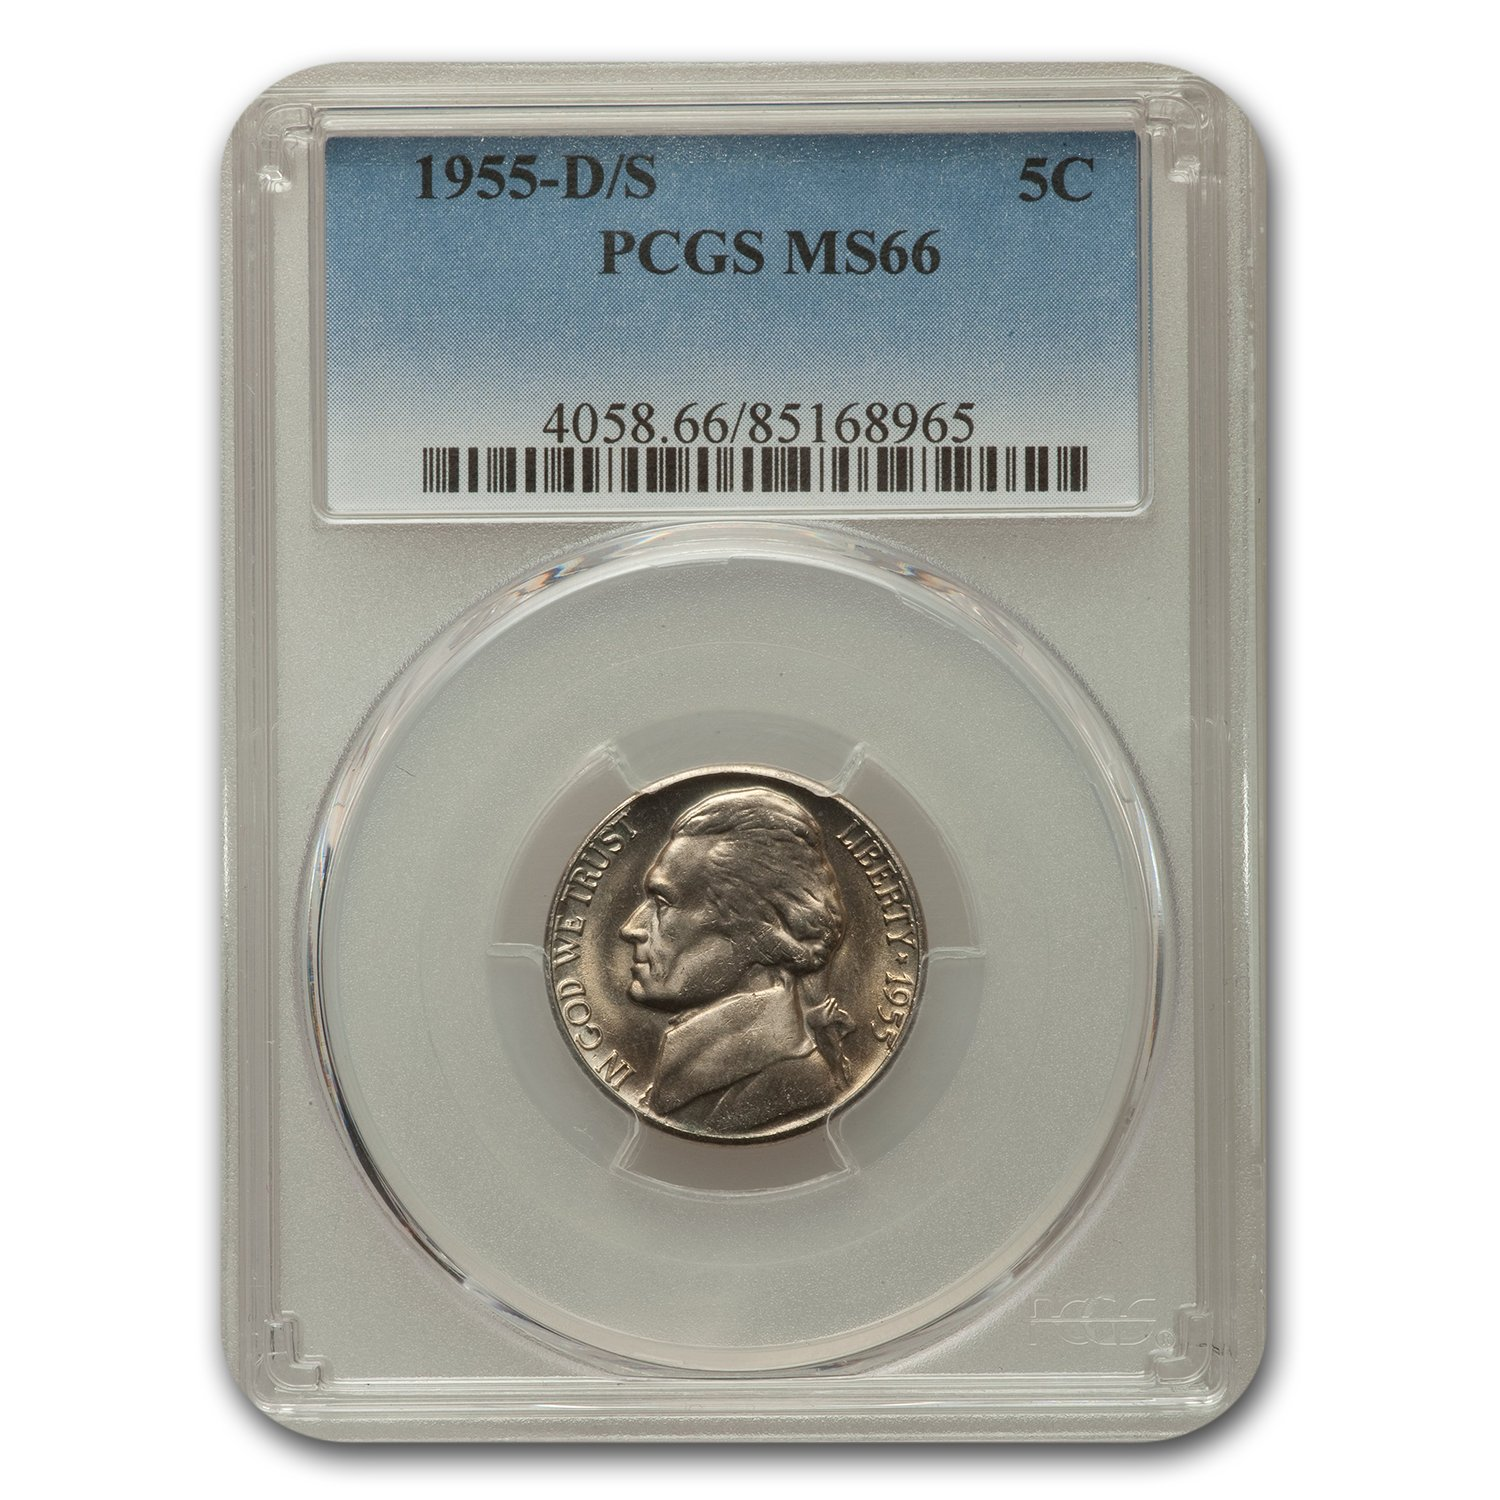 1955-D/S Jefferson Nickel MS-66 PCGS